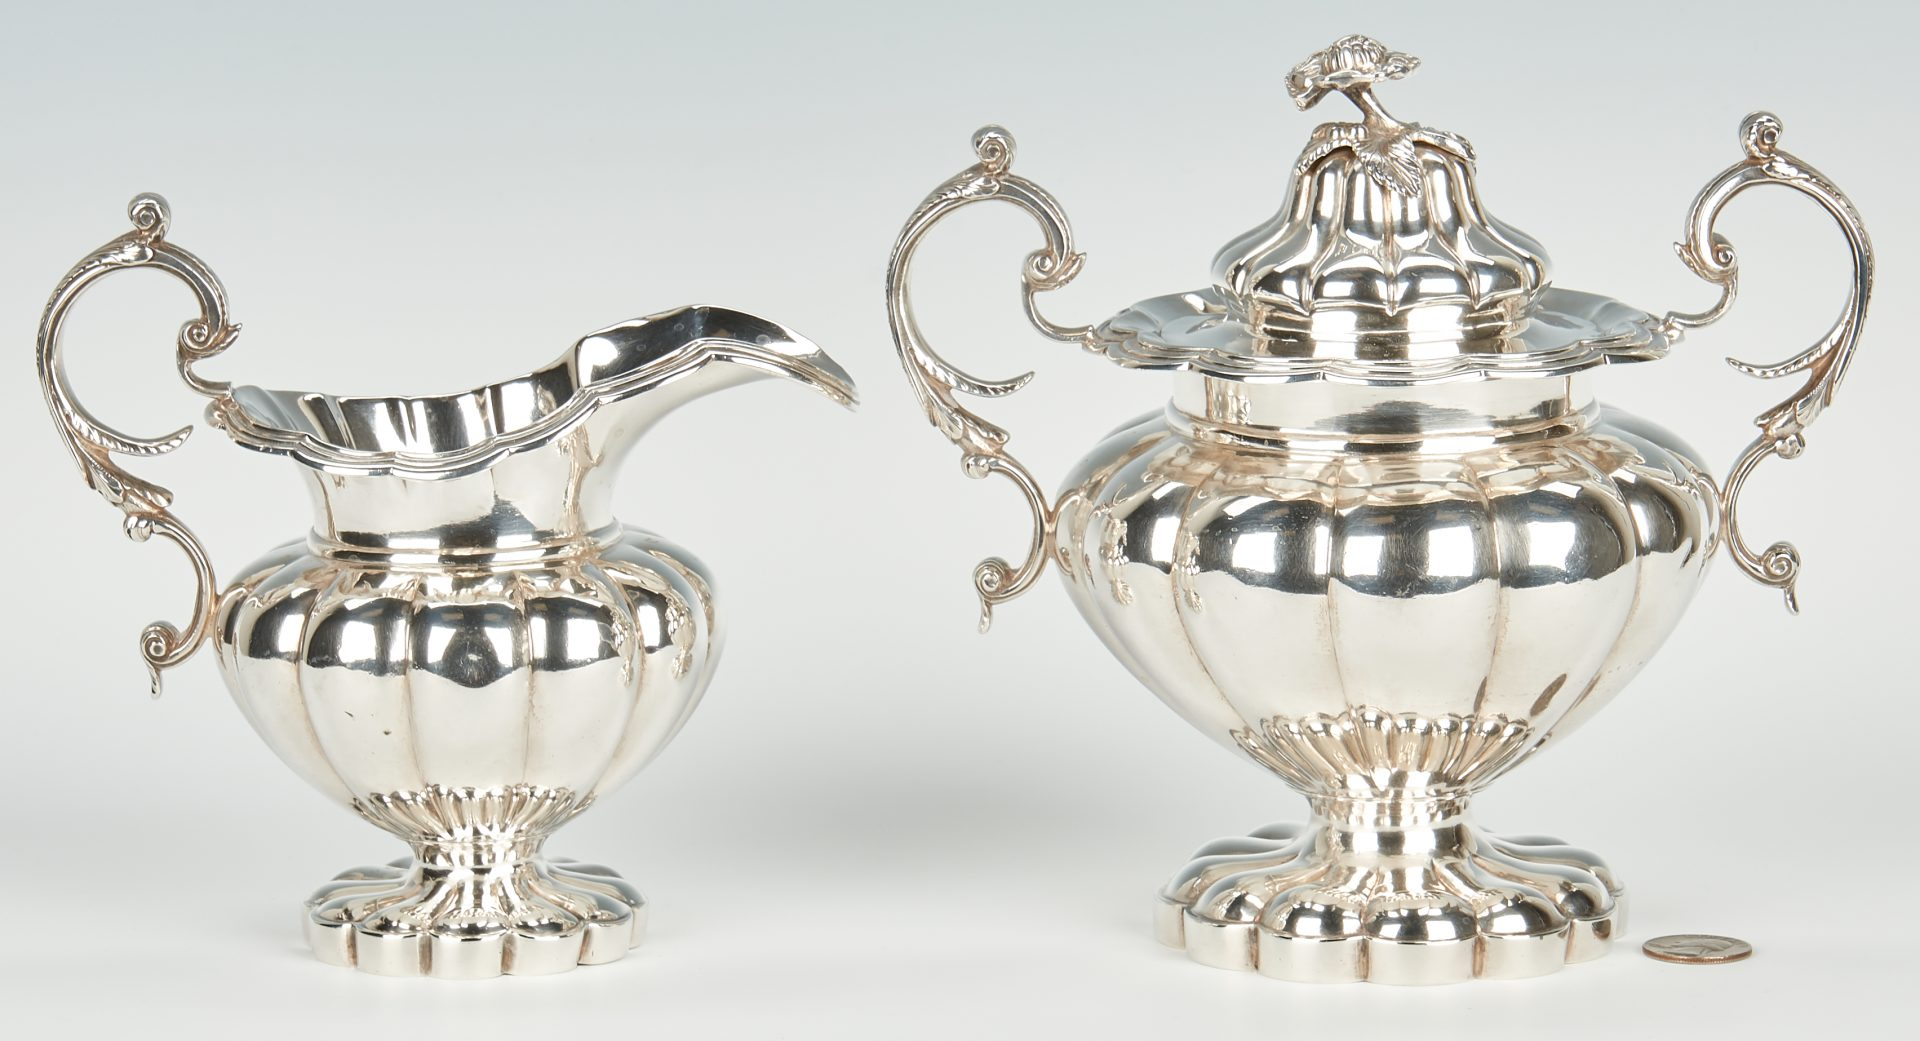 S. & B. Brower New Orleans, Classical coin silver melon form covered sugar bowl and creamer